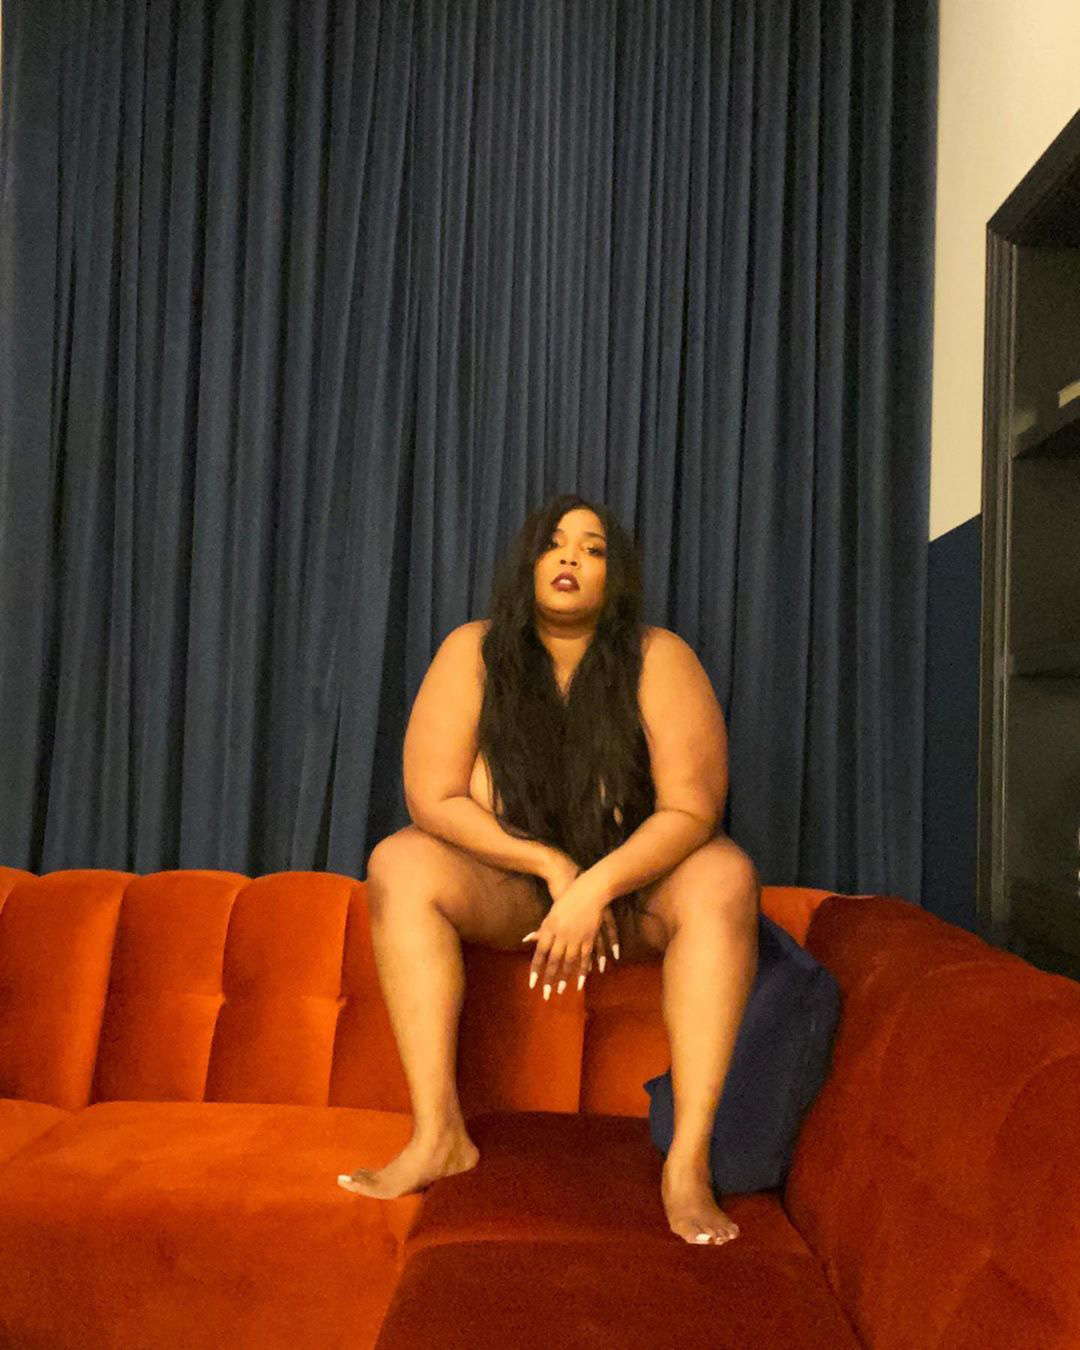 Lizzo Poses Nude in Sexy New Snaps